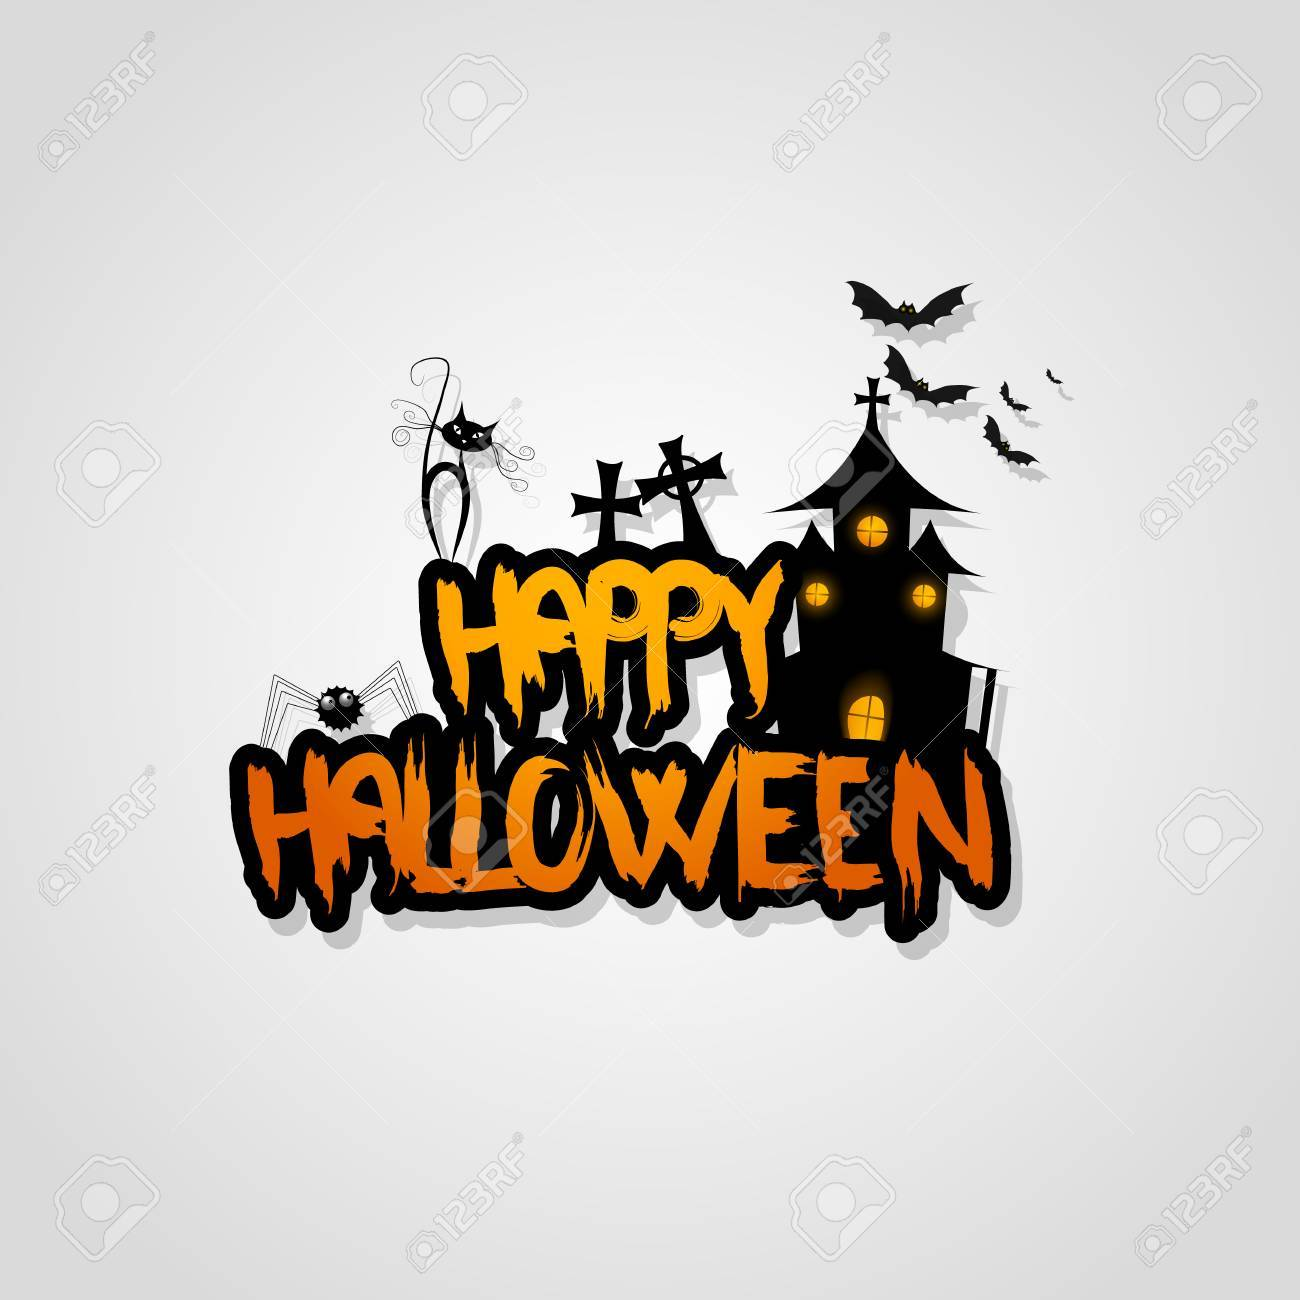 Vector Design With Halloween Happy Halloween Lettering Royalty Free Cliparts Vectors And Stock Illustration Image 64263271